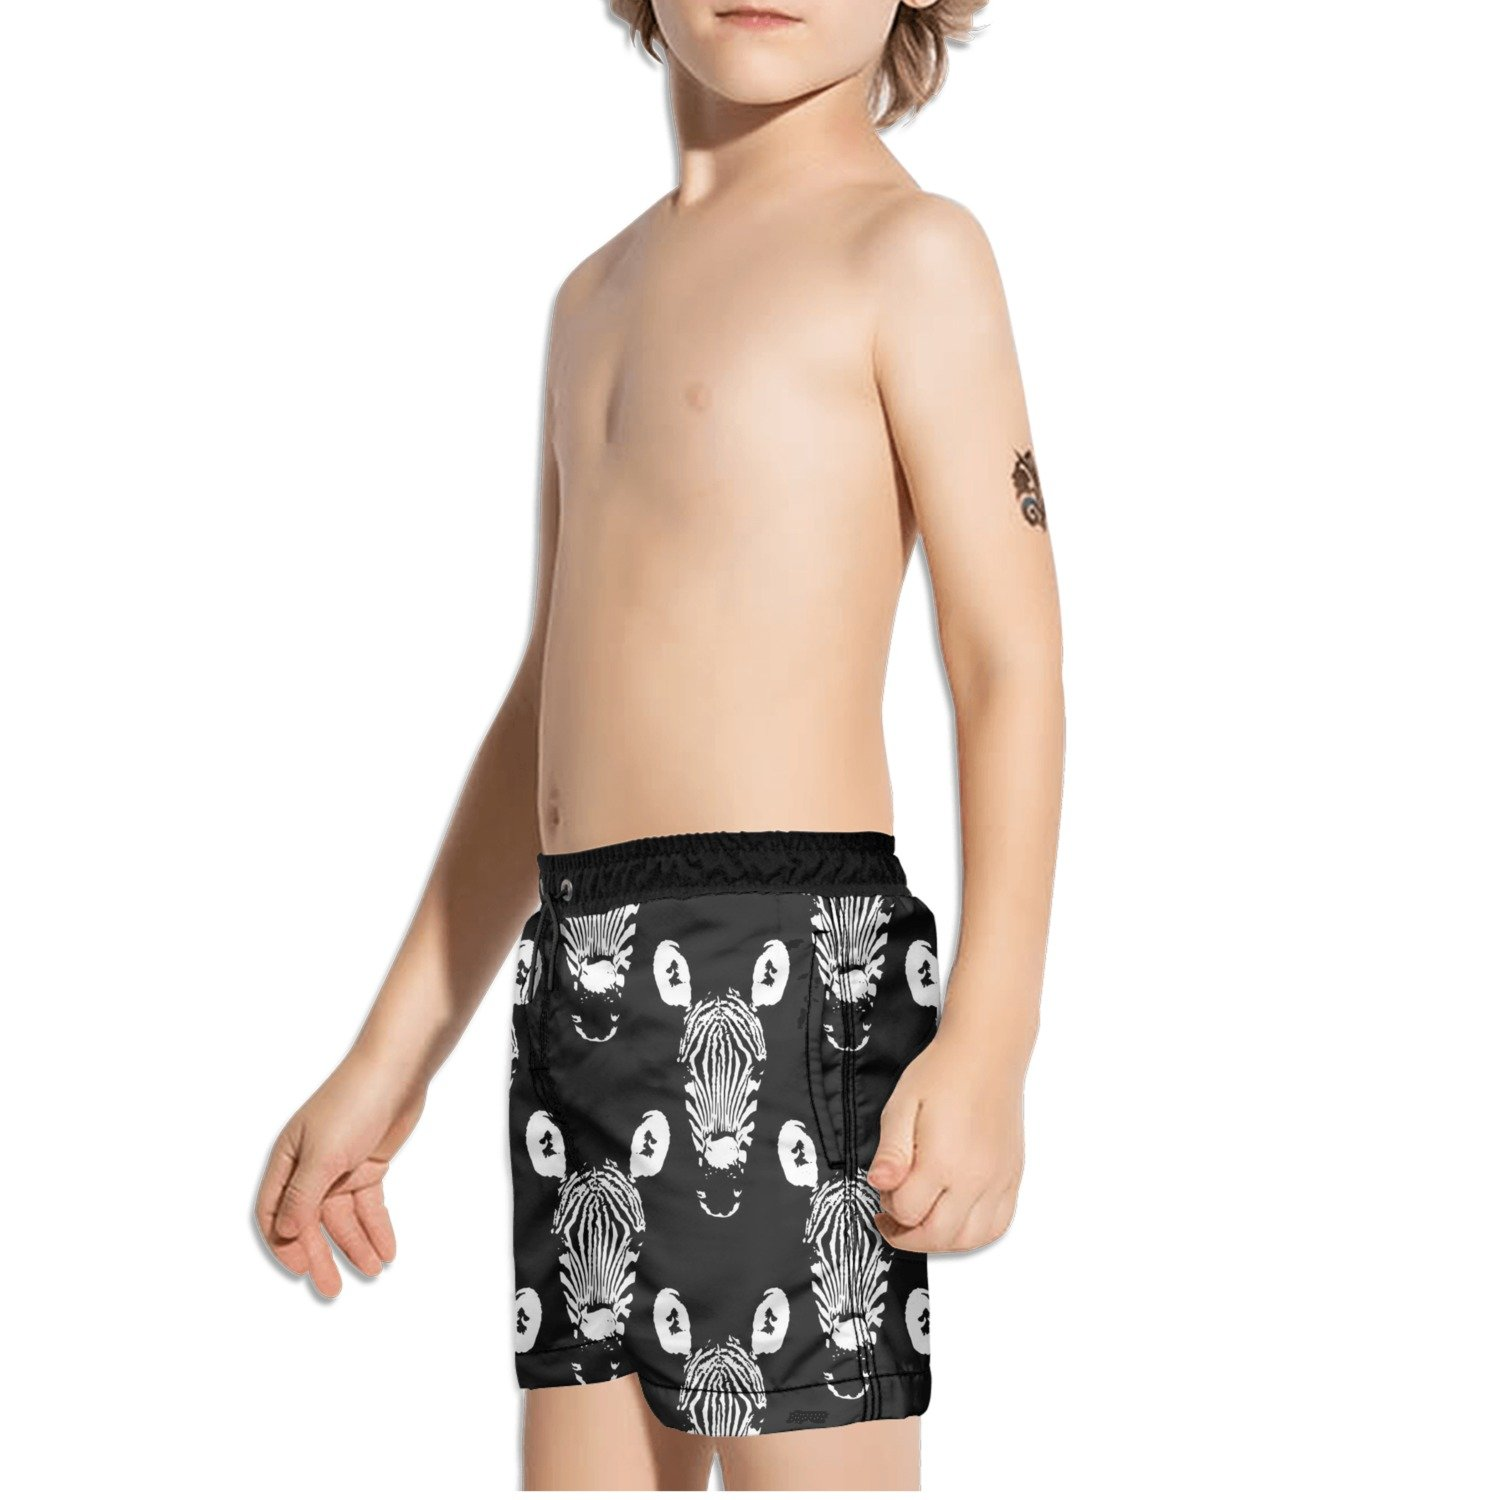 FullBo Black and White Zebra Heads Little Boys Short Swim Trunks Quick Dry Beach Shorts